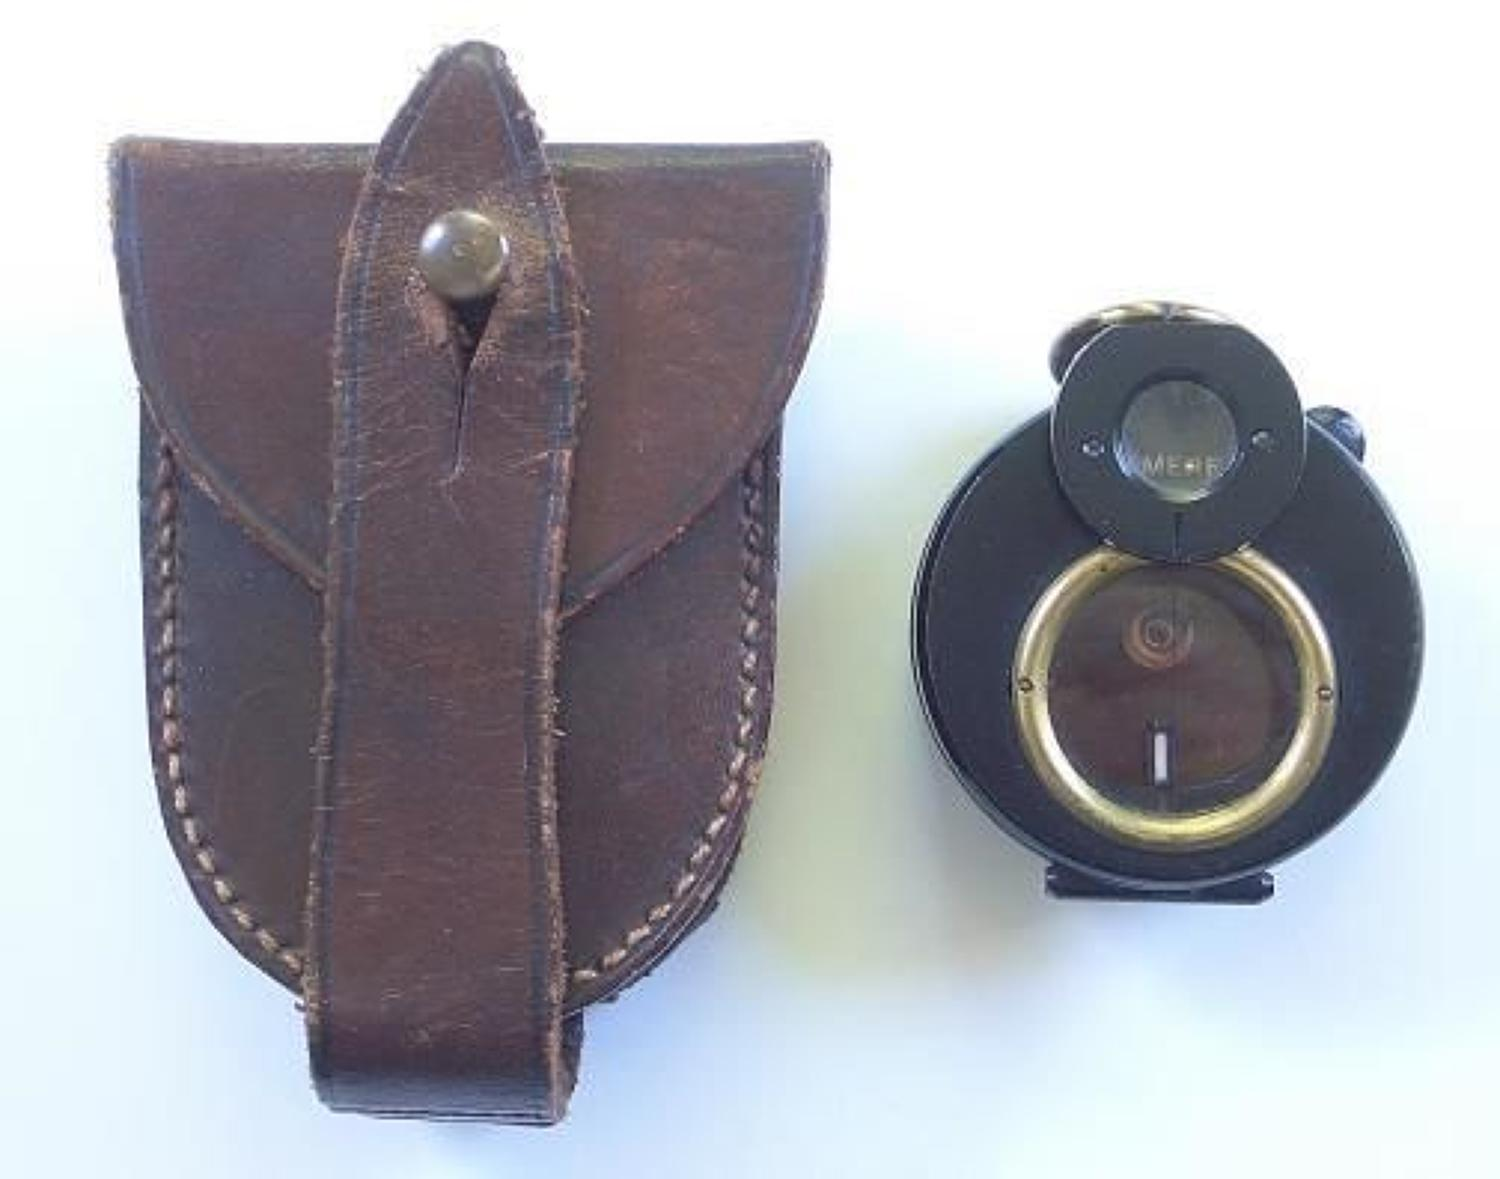 WW1 Liverpool Regiment Officers Attributed Marching Compass.